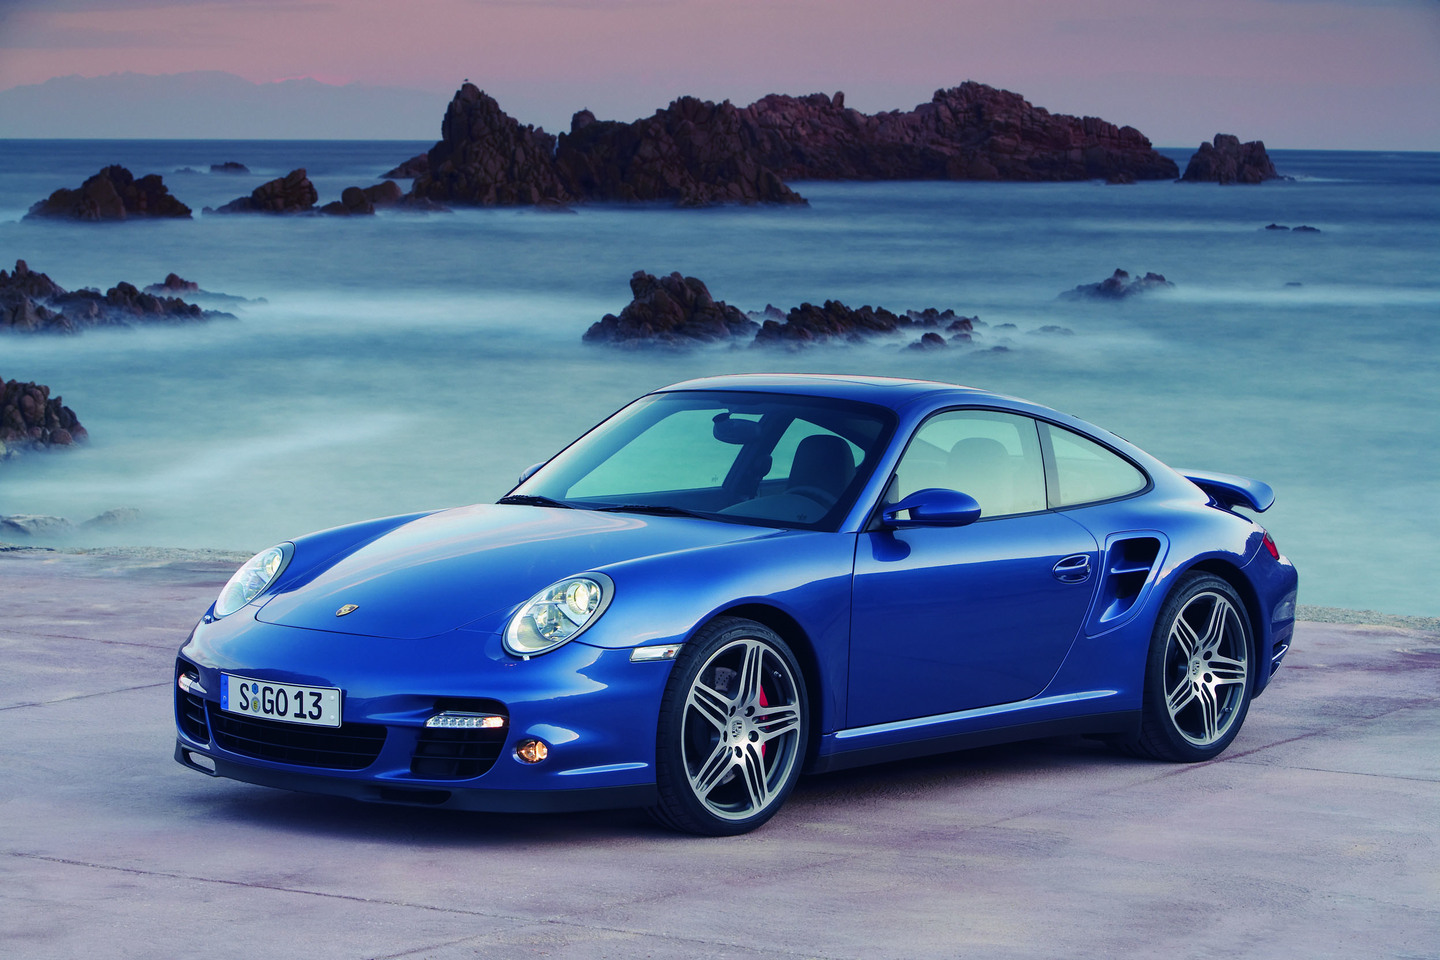 Be Turbo Porsche 911 Turbo Auto Wallpapers Groenlicht Be